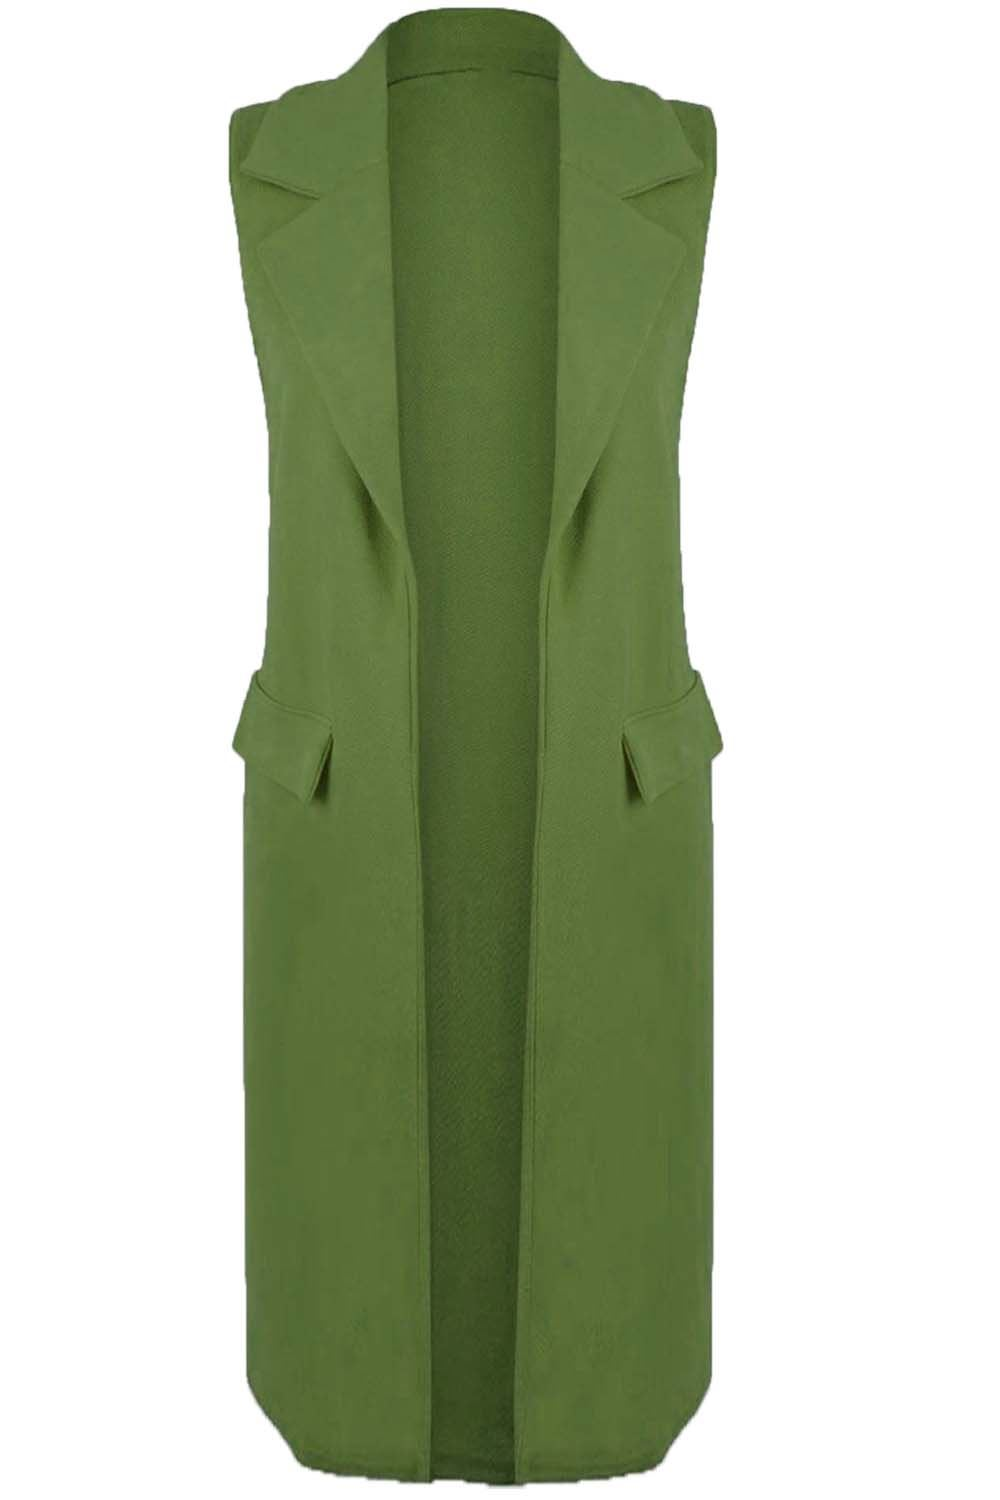 Shop for Women's Sleeveless Jacket at bonjournal.tk Free Shipping. Free Returns. All the time.